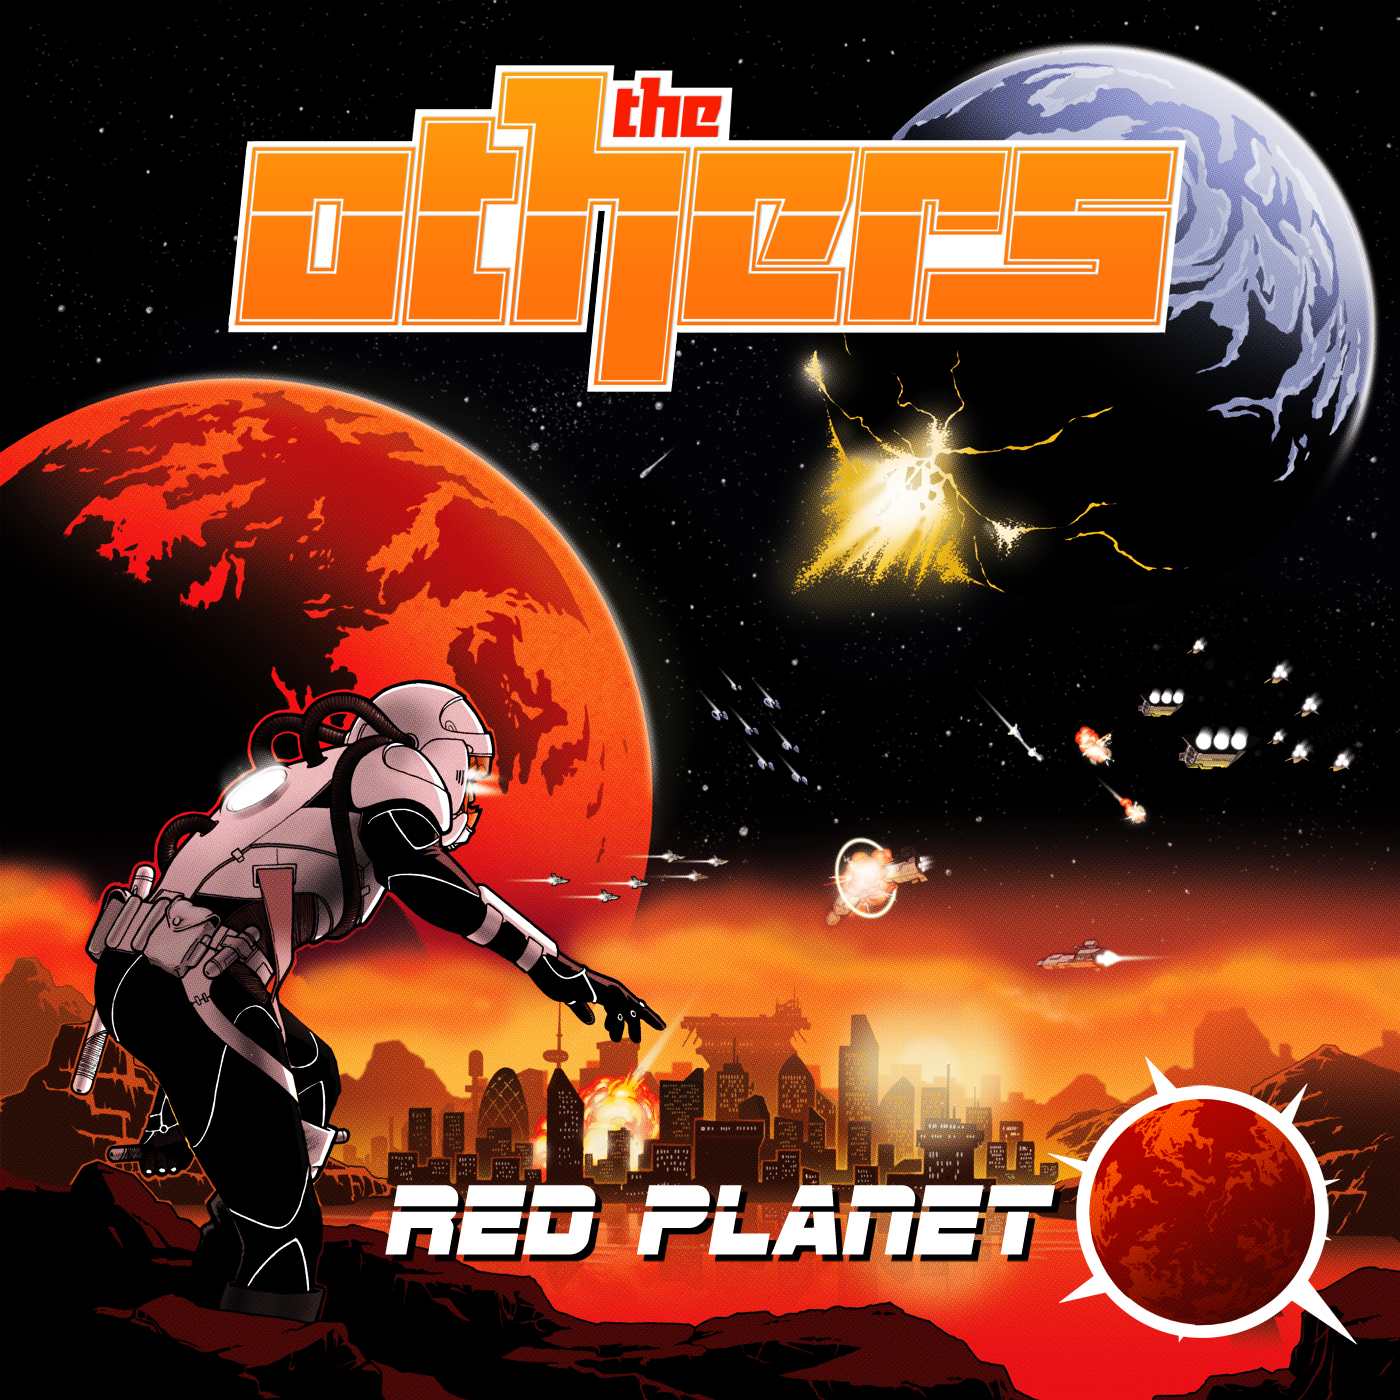 DPCD006: RED PLANET